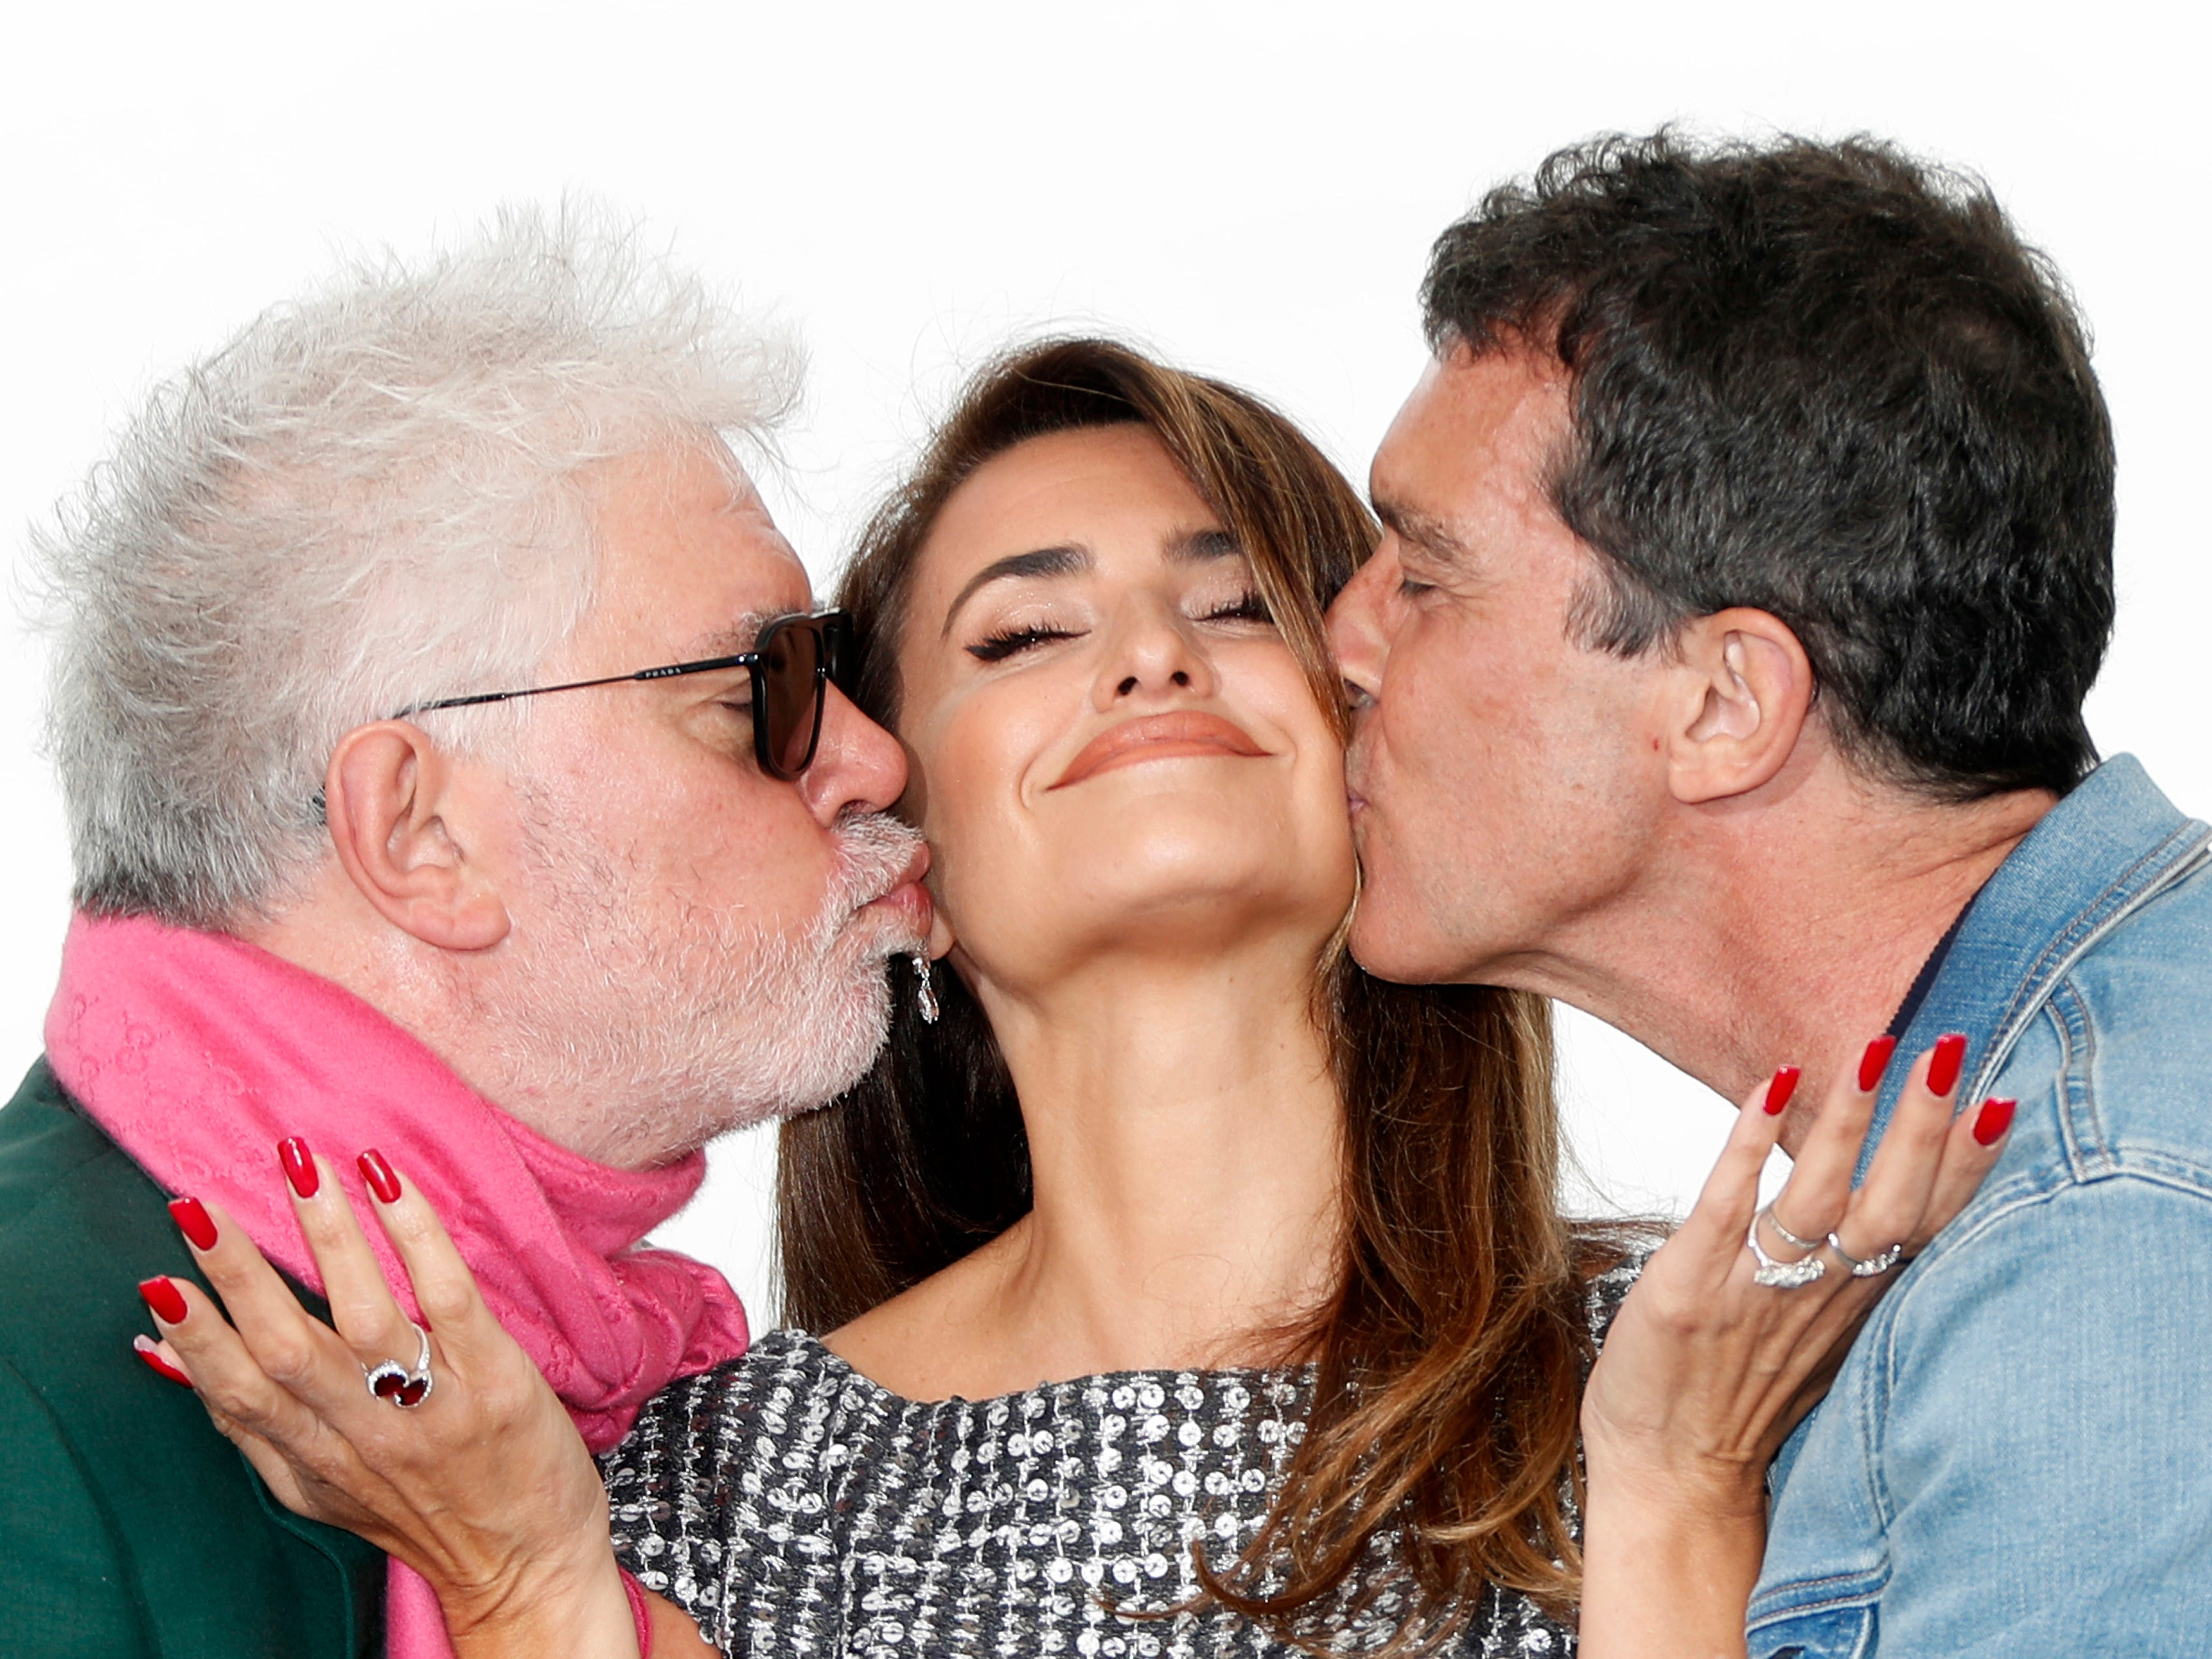 Spanish director Pedro Almodovar, Spanish actress Penelope Cruz and Spanish actor Antonio Banderas pose during the photocall for 'Dolor y Gloria' (Pain and Glory) at the 72nd annual Cannes Film Festival, in Cannes, France on May 18, 2019.